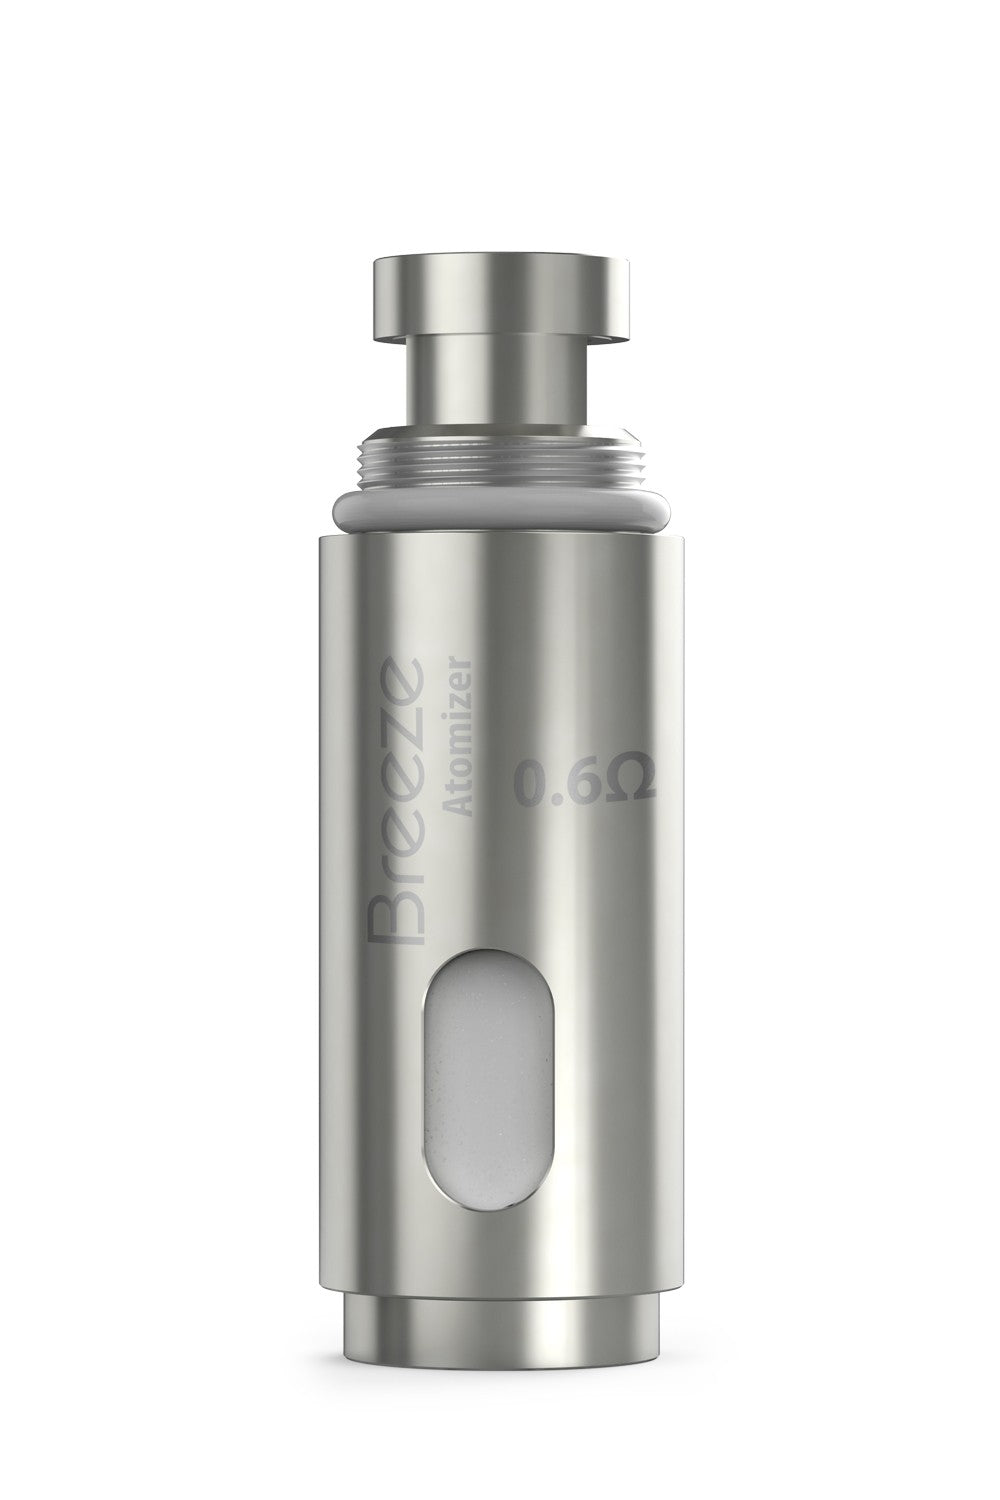 Aspire - Atomizer Breeze U-Tech Coil 5-pack 0.6ohm for sale